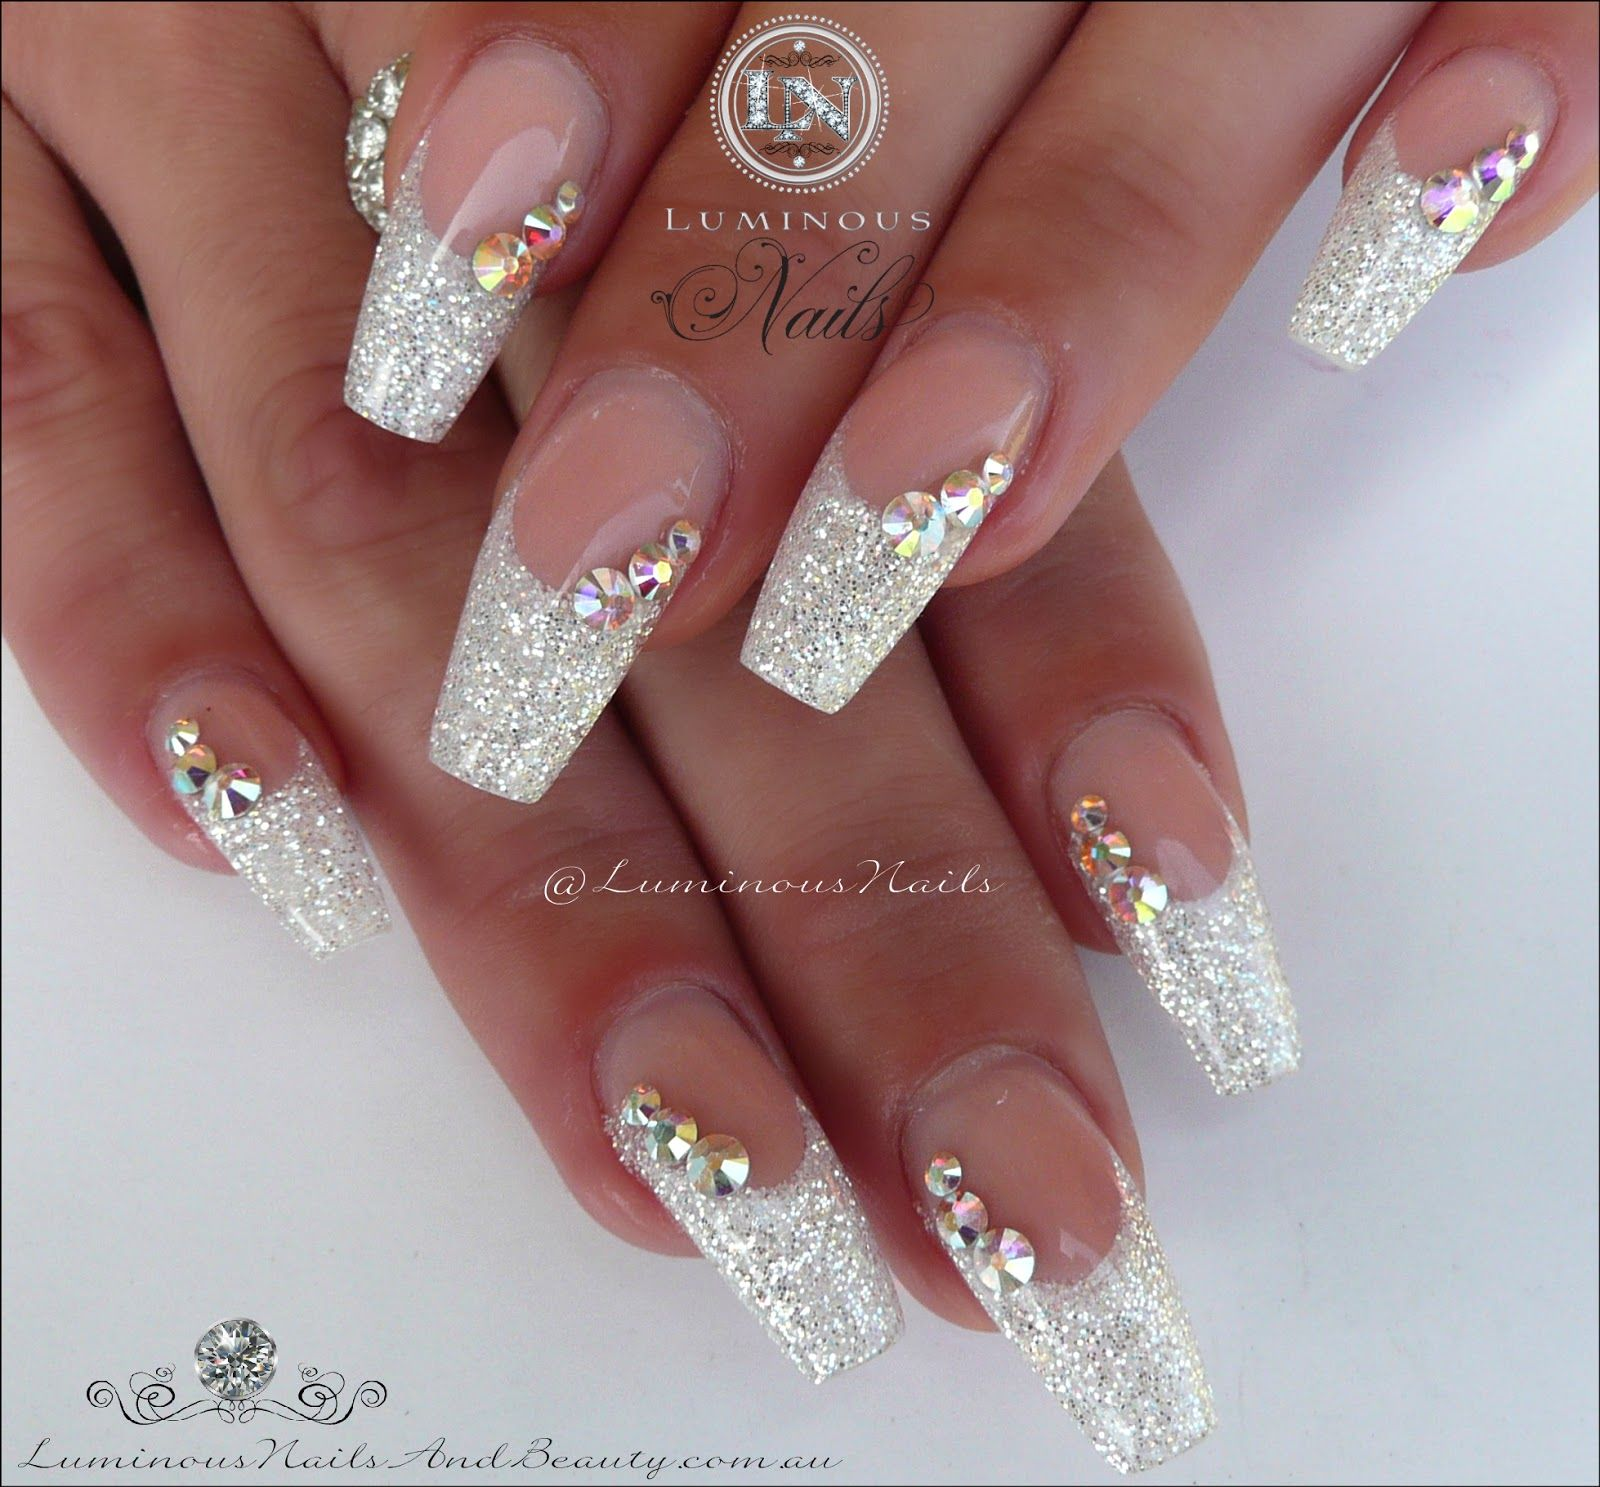 Luminous+Nails+%26+Beauty%2C+Gold+Coast+QLD.+White ...